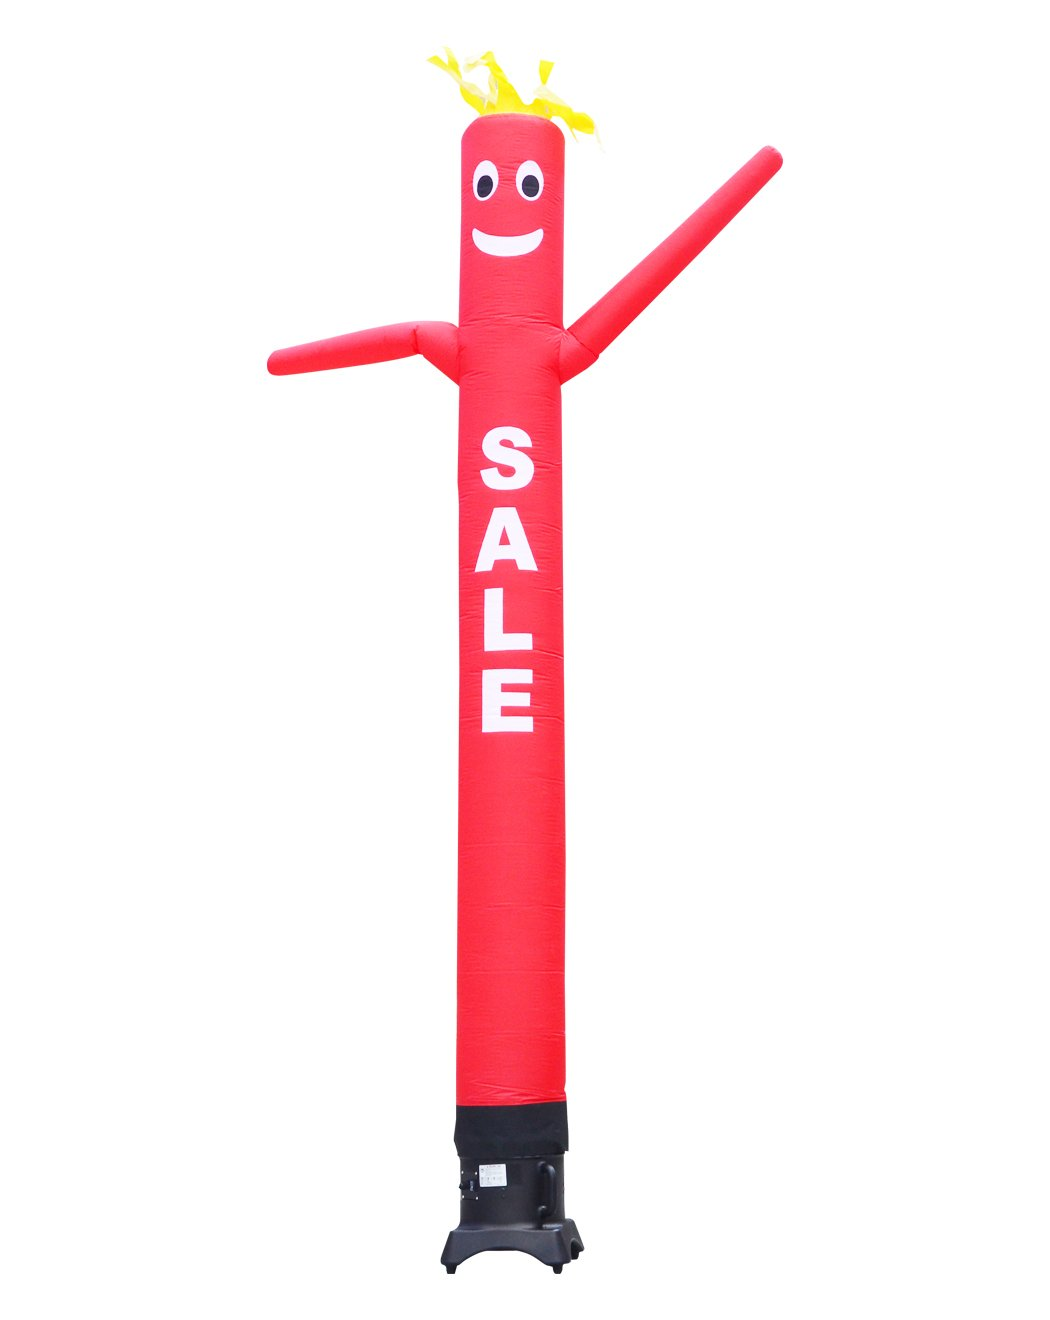 LookOurWay ''Sale Air Dancers Inflatable Tube Man Attachment, 10-Feet, Red (No Blower) by LookOurWay